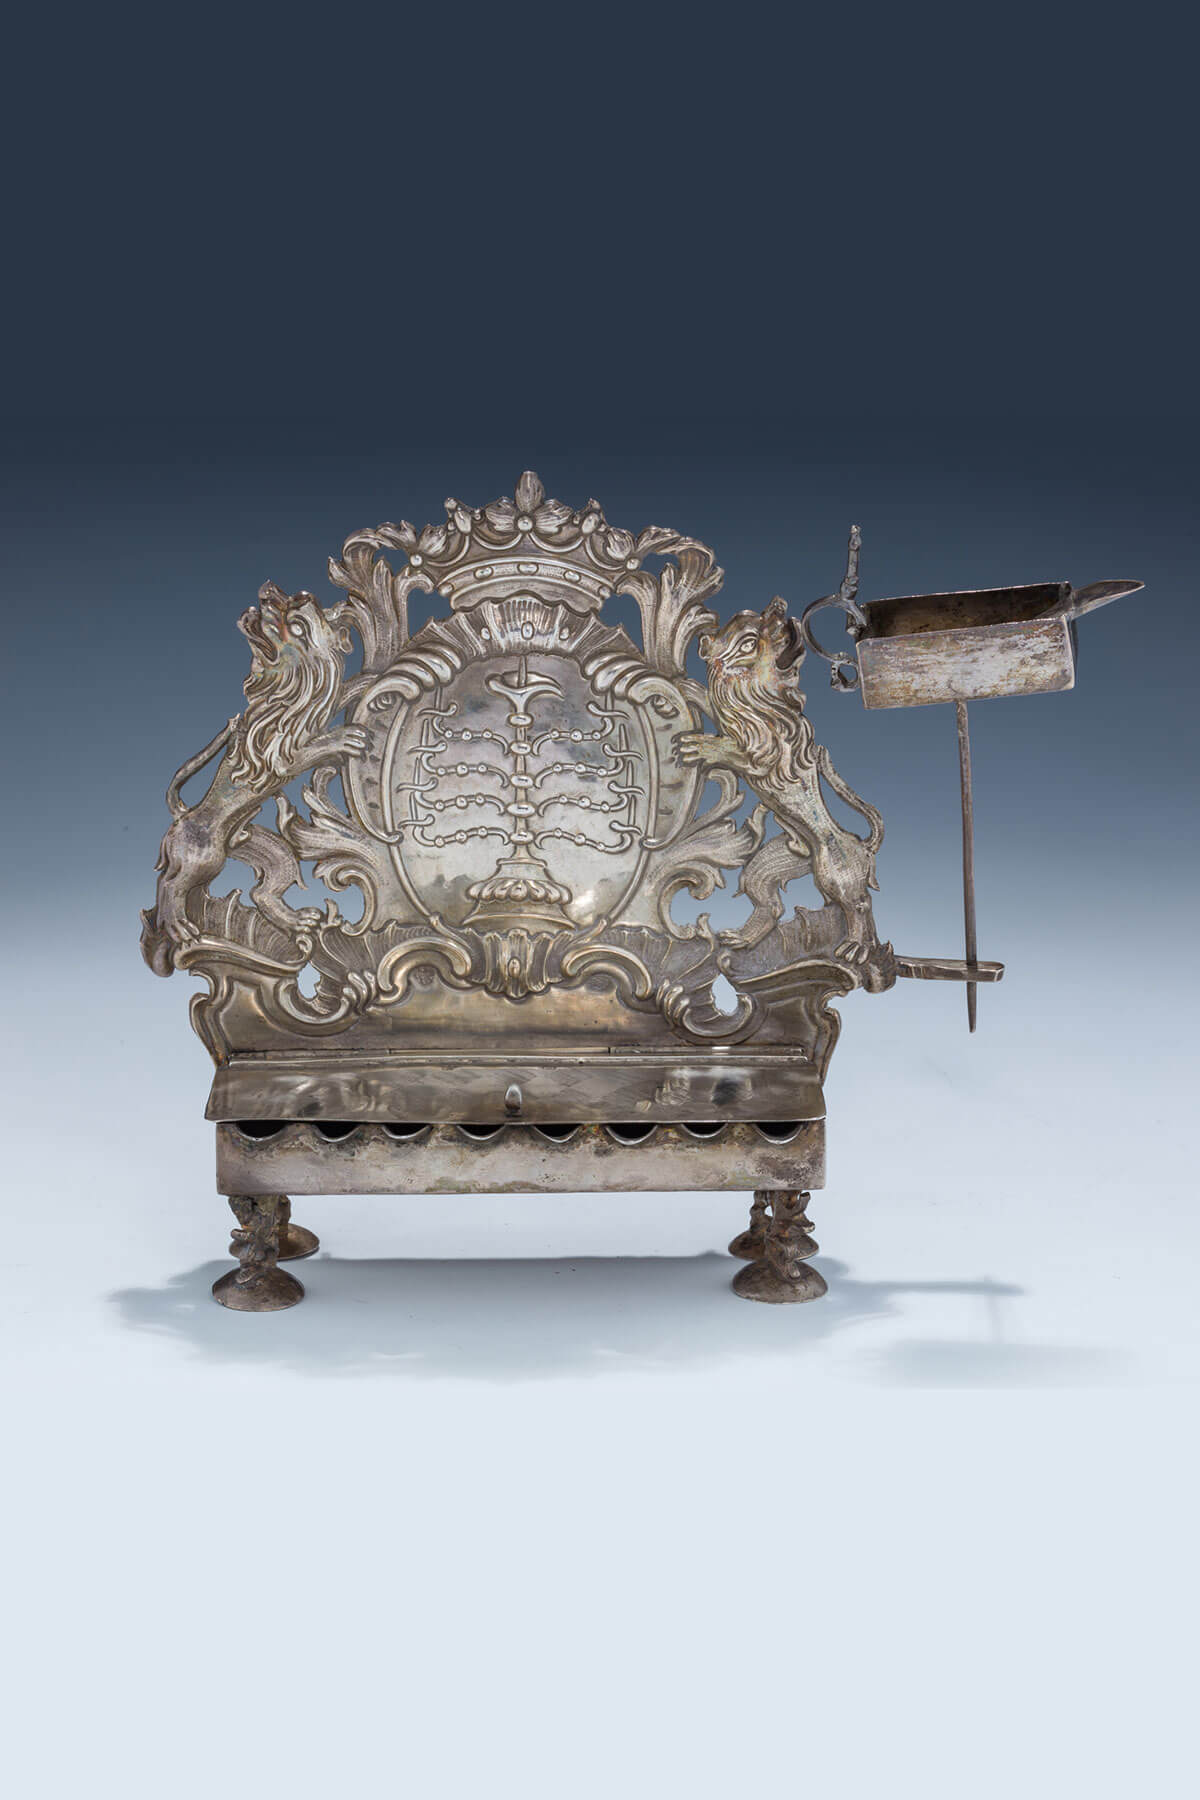 122. A Rare And Important Chanukah Lamp by Johann Jakob Leschorn